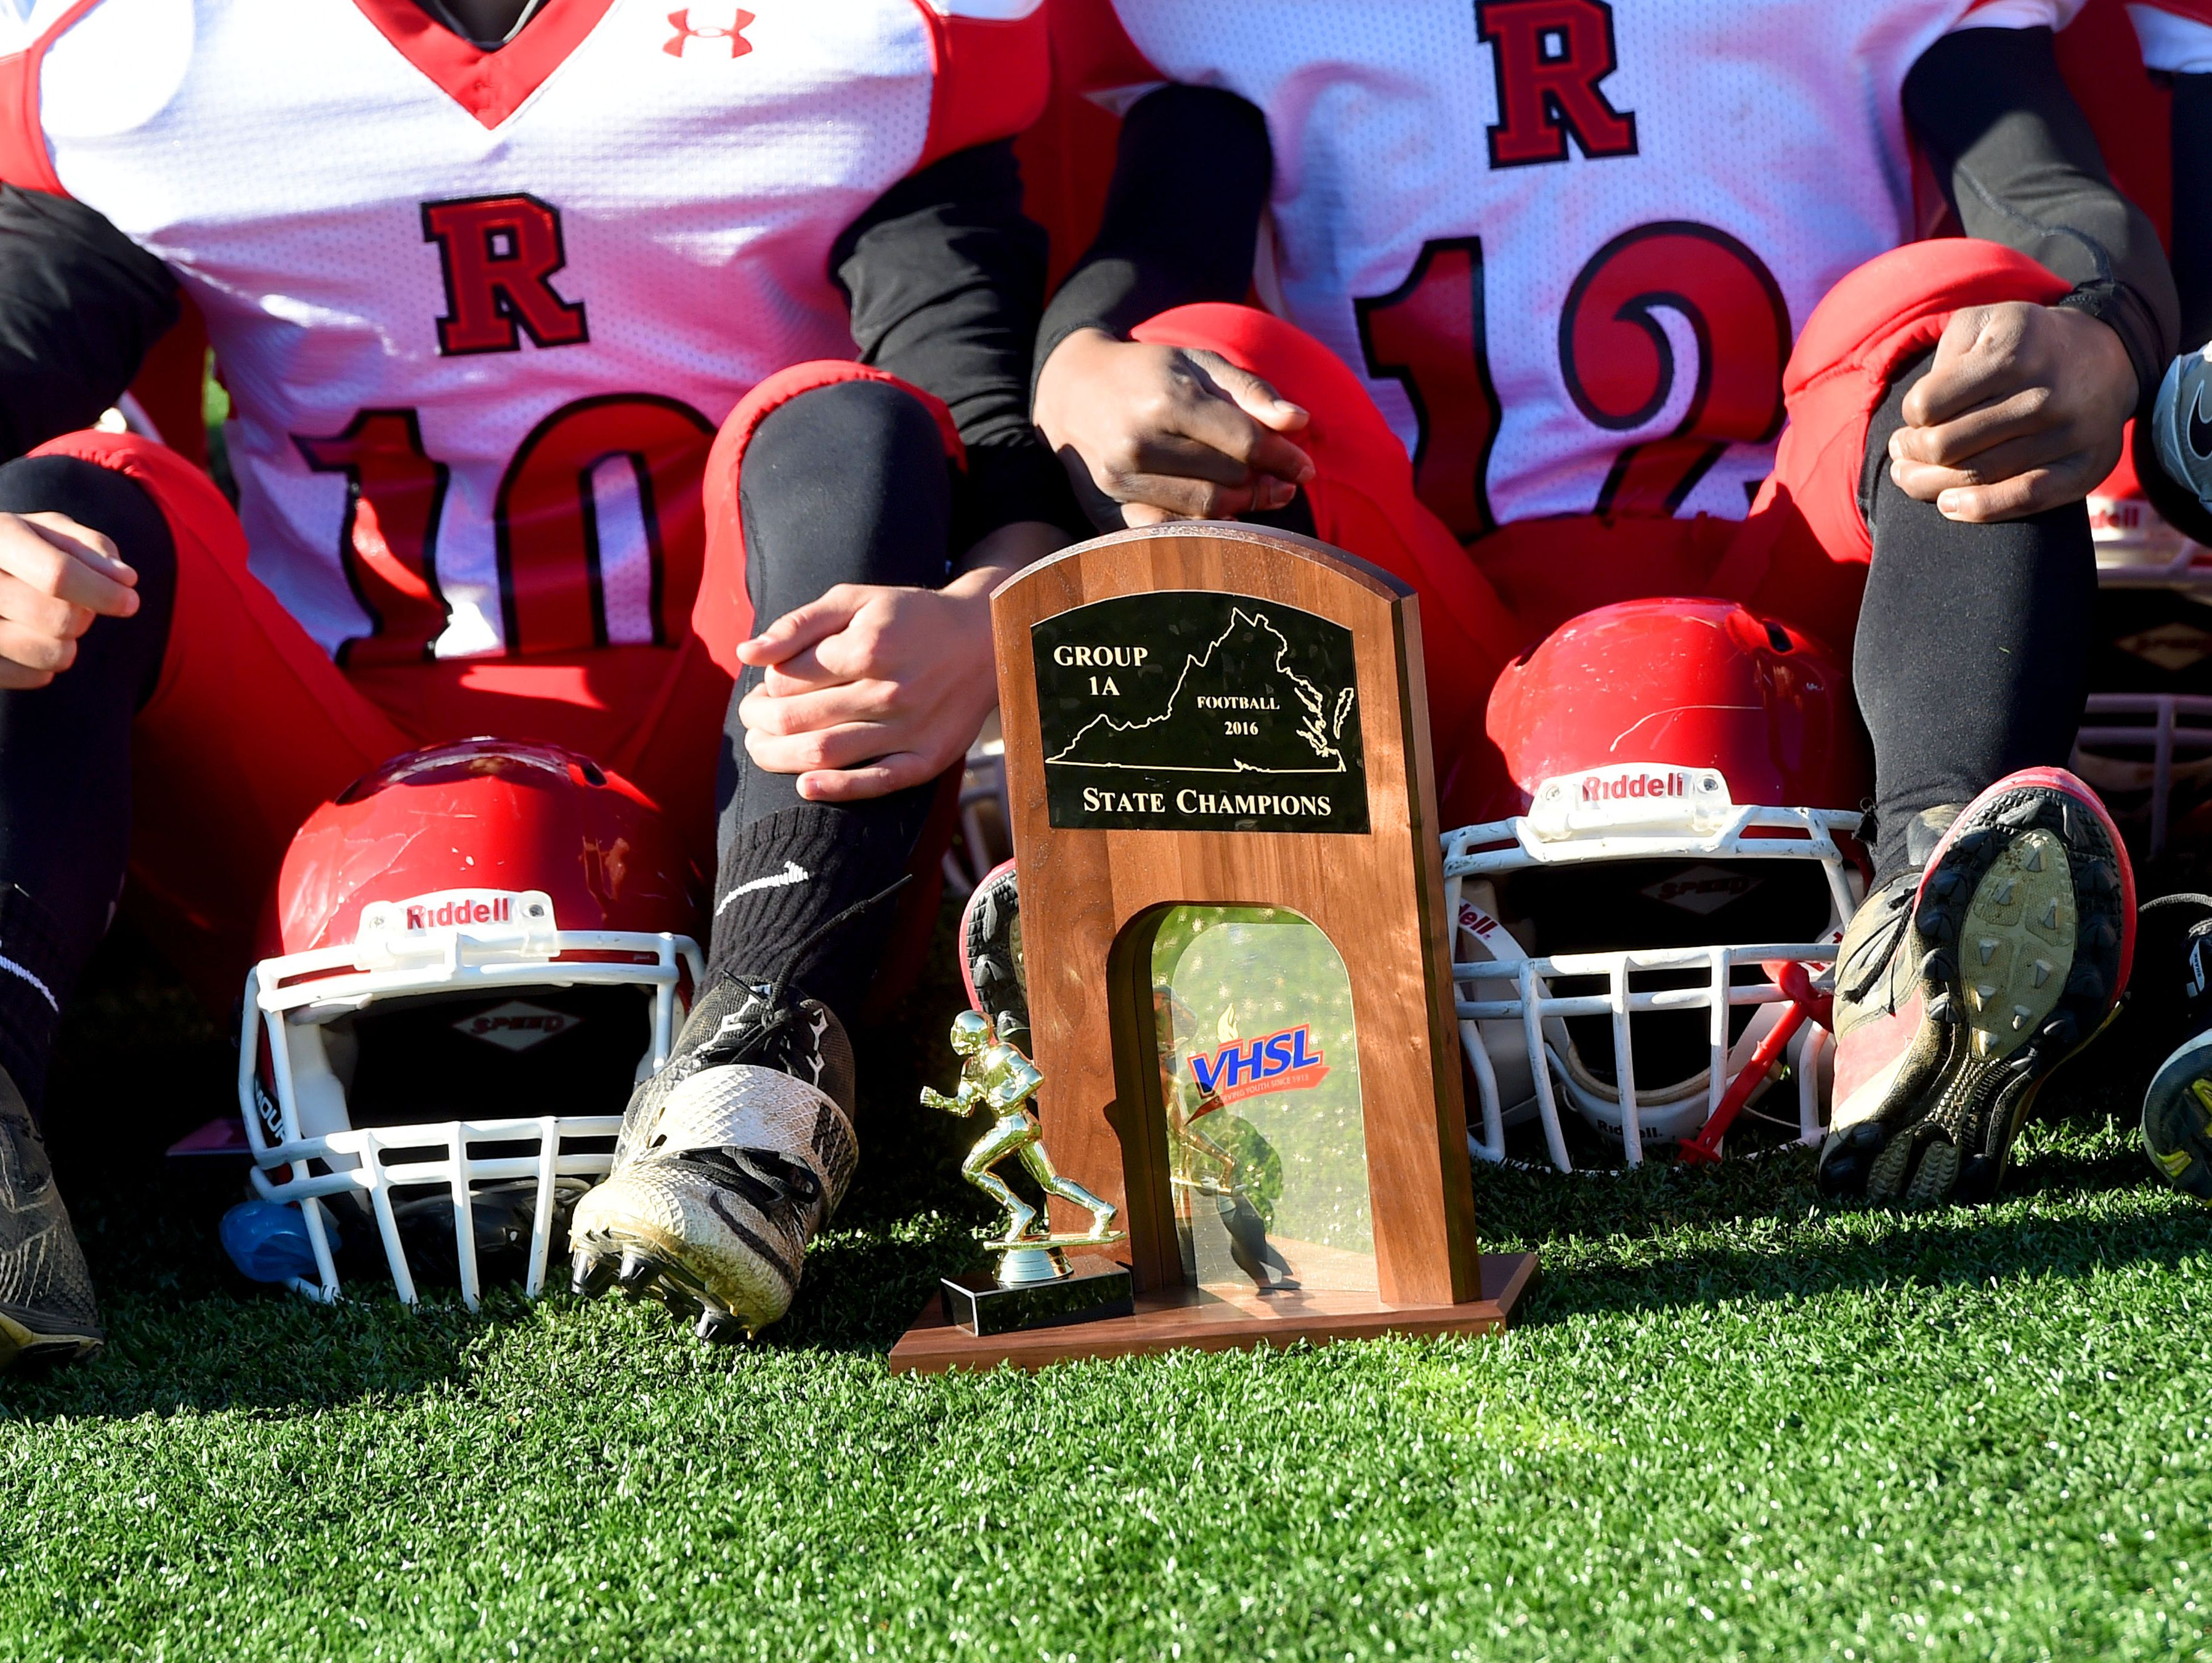 The Group 1A state championship trophy is on the ground at the feet of the Riverheads' football team as they gather for a group photo after they defeated Sussex Central to win the state championship, 49-6.